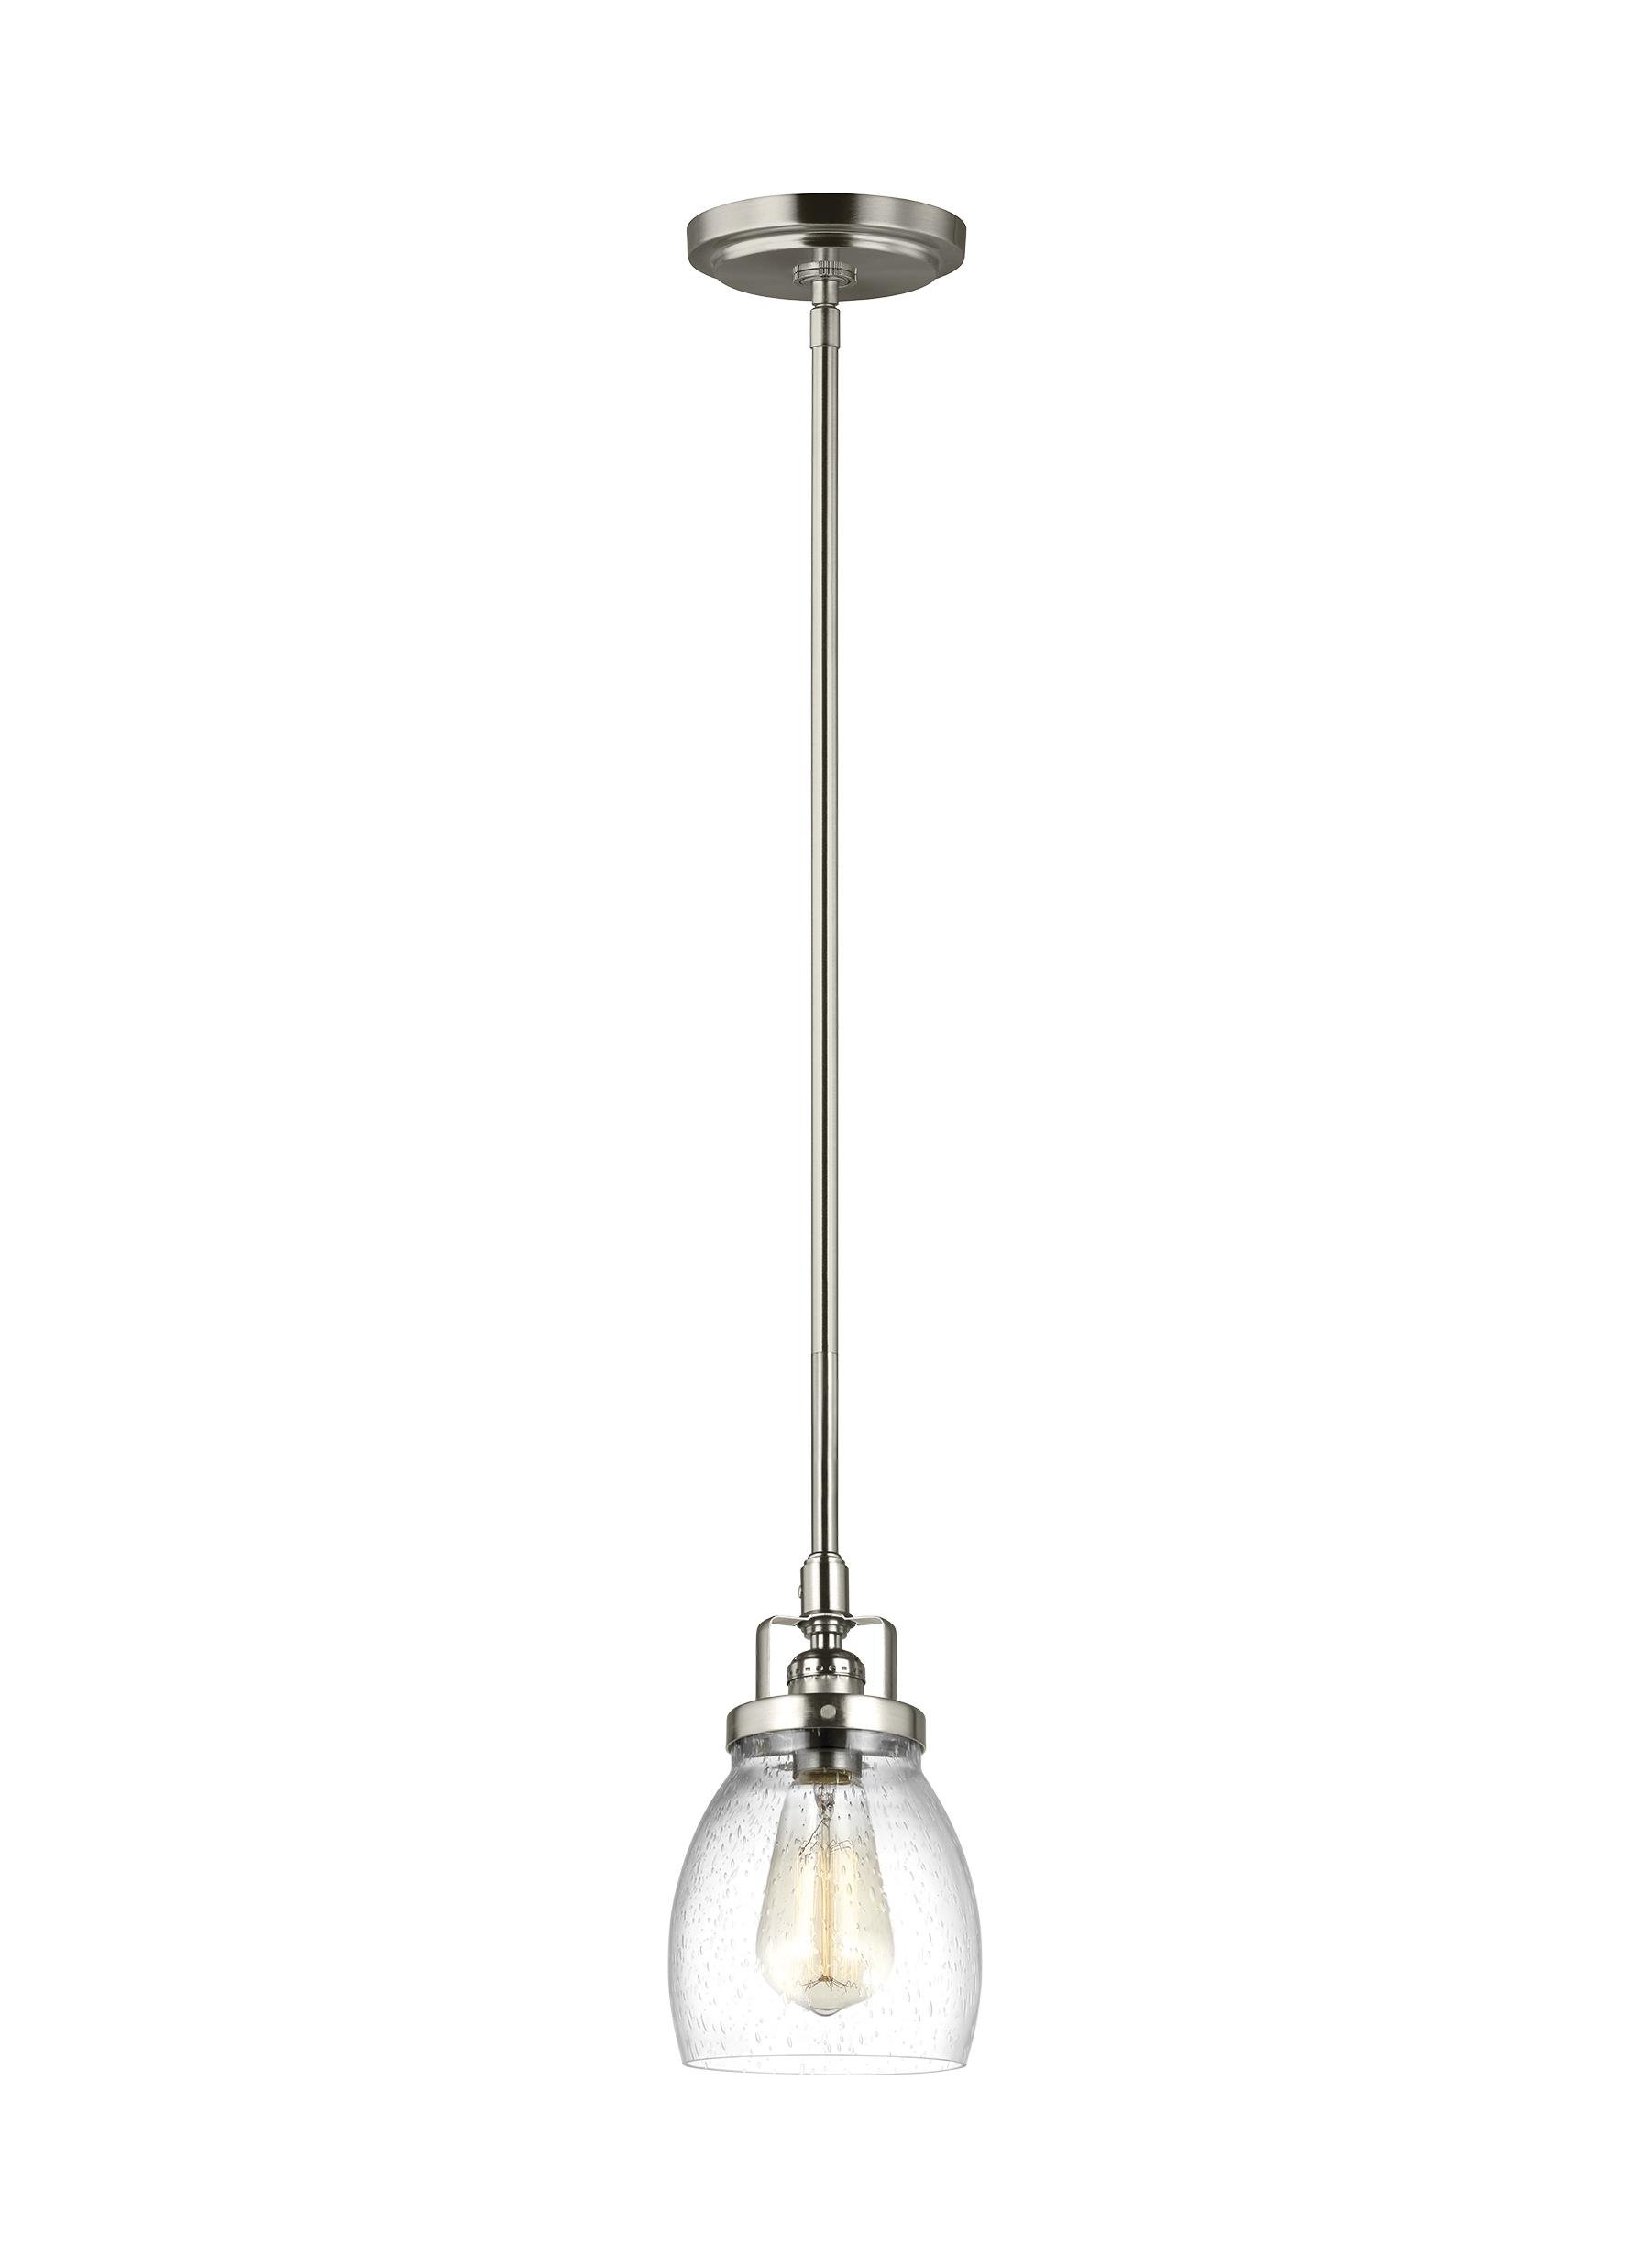 Houon 1 Light Cone Bell Pendants With Regard To 2019 Houon 1 Light Cone Bell Pendant (Gallery 2 of 25)